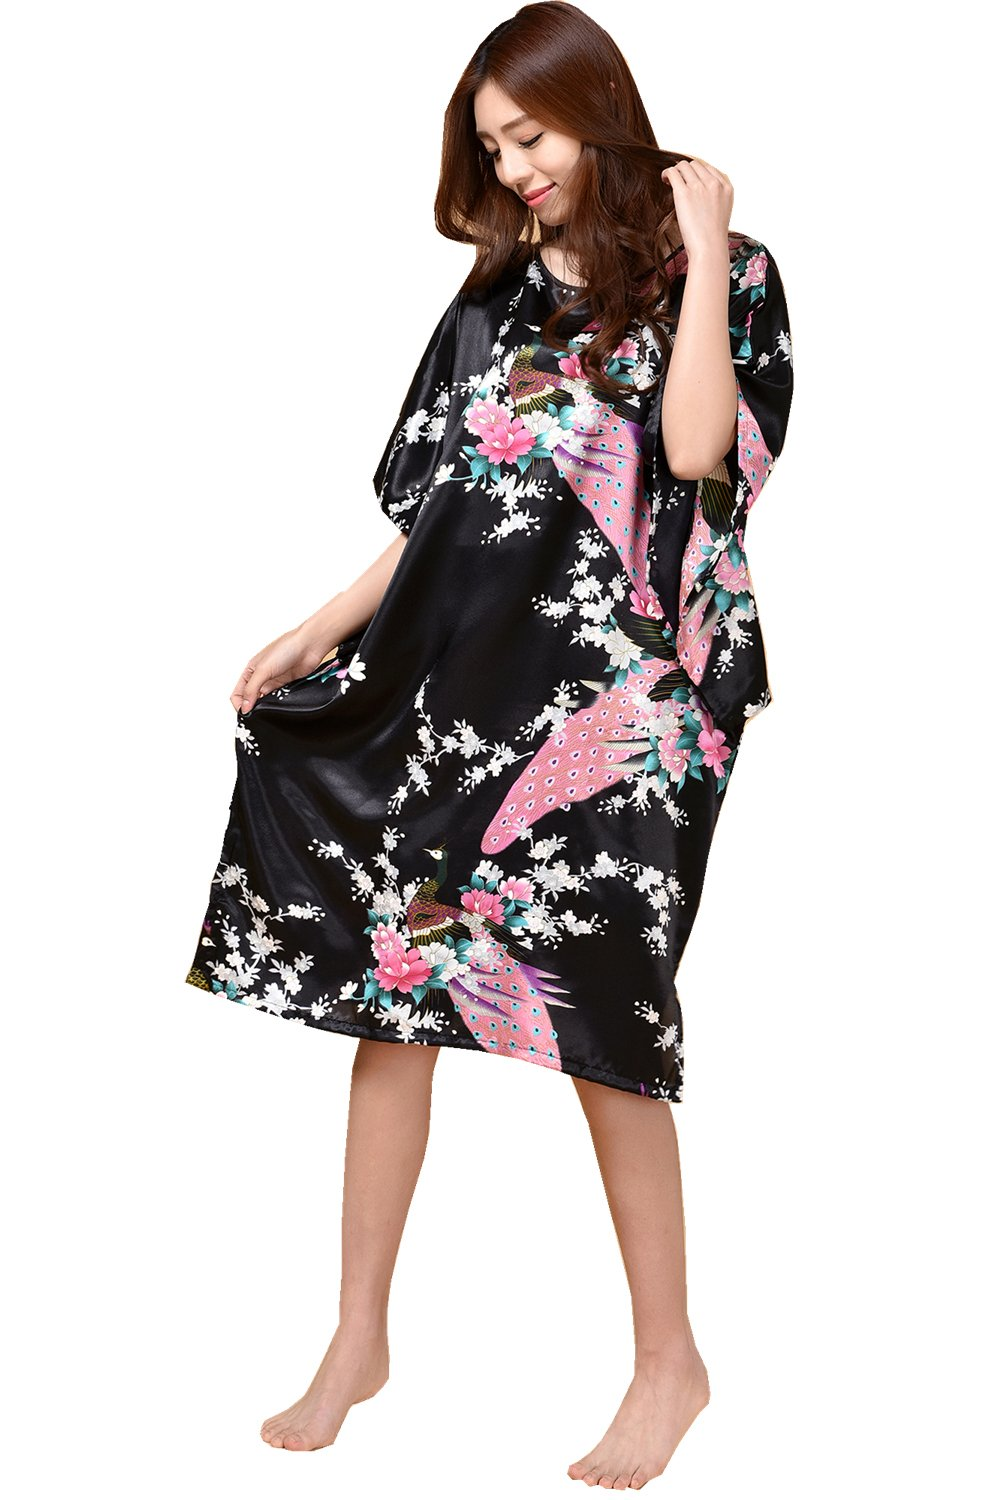 GAOLIGUO GL&G Animal pattern lady silk bathrobe thin section pajamas printing single skirt loose large yards home service comfortable black bathrobes,black,One size by GAOLIGUO (Image #2)